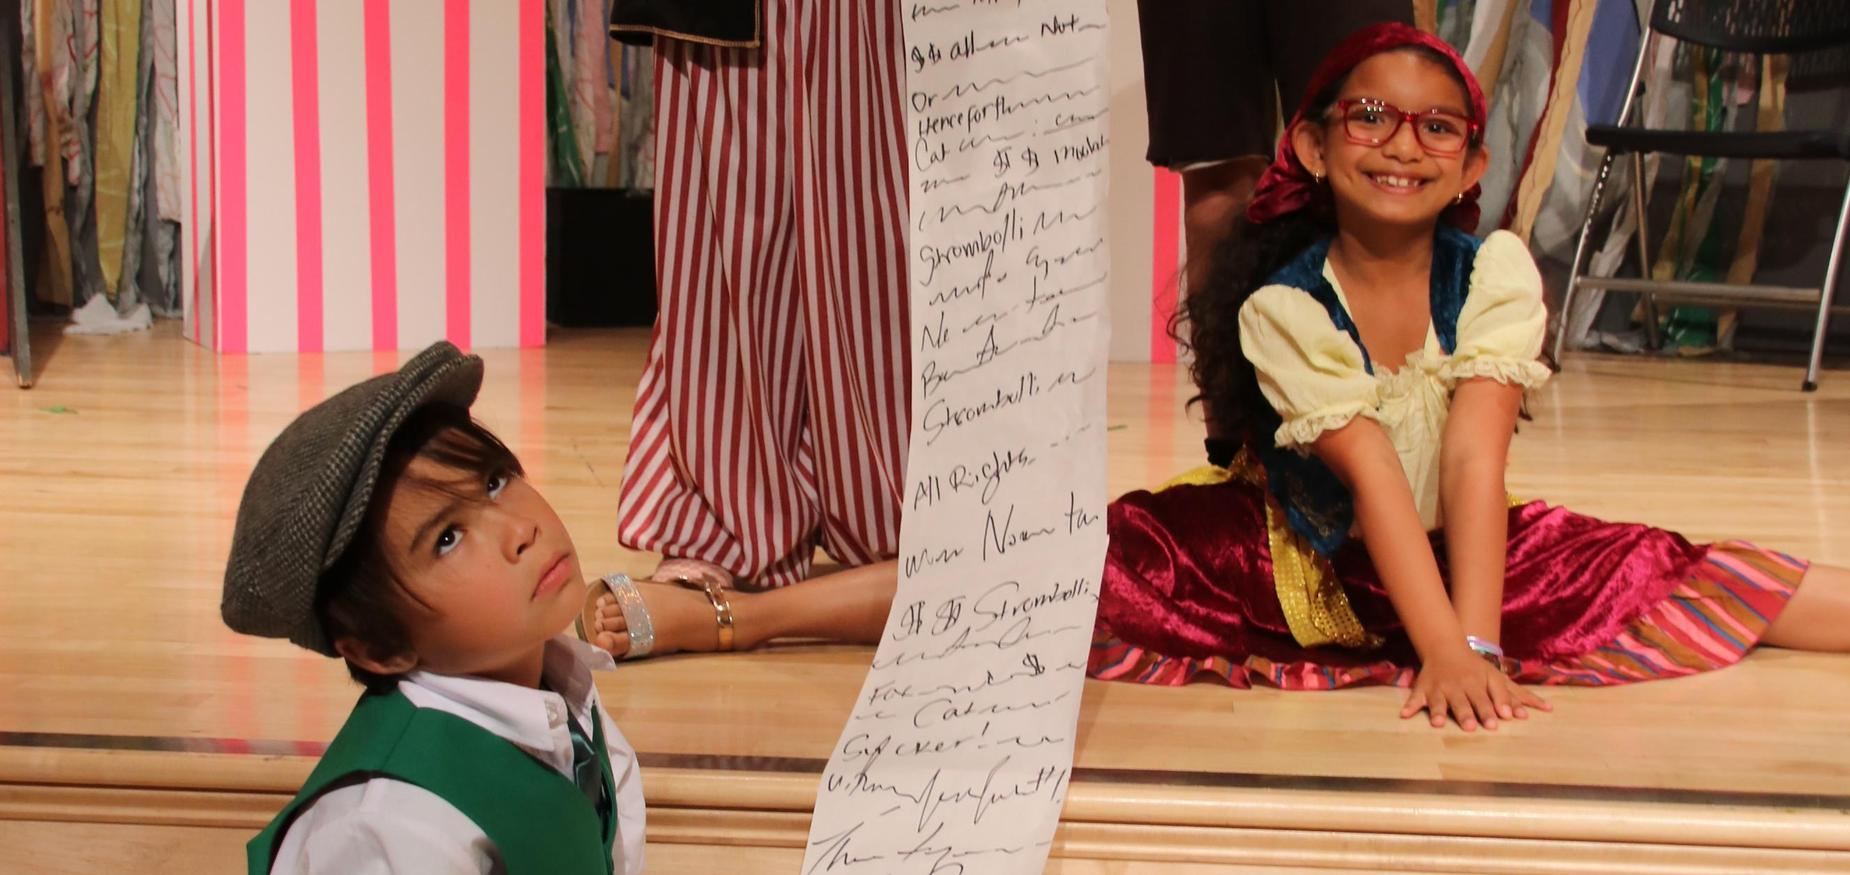 Two students from the play the Adventures of Pinocchio